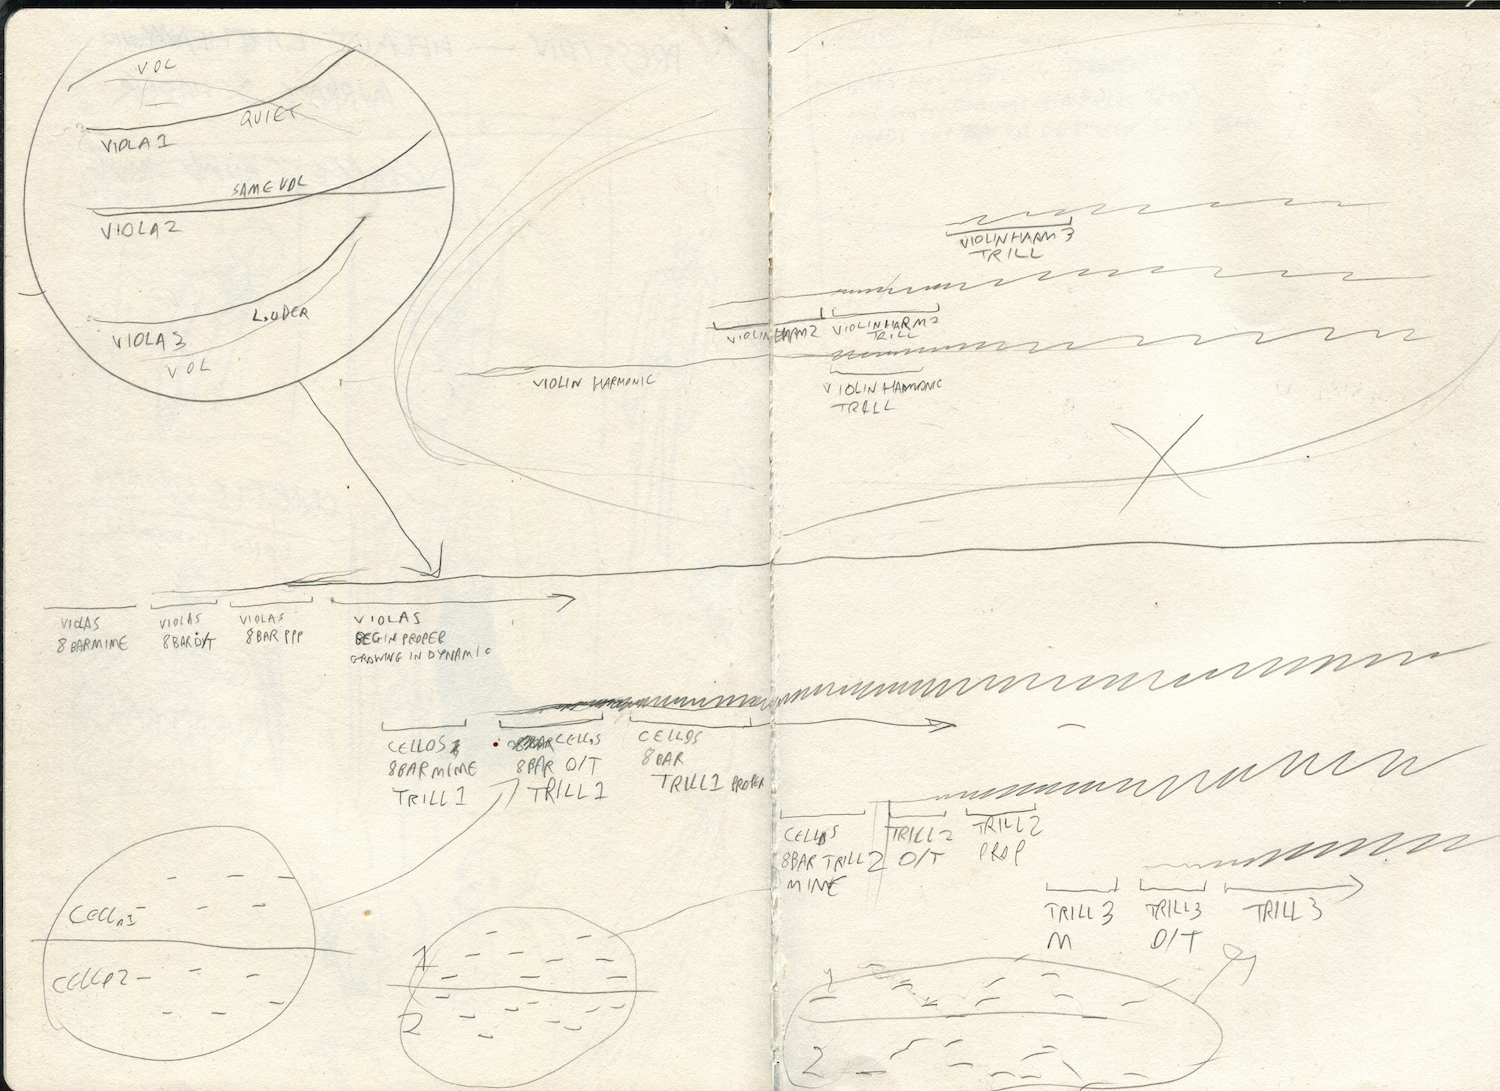 Keaton Henson Anxiety In Various Media Elephant Aug Capacity To Draw Schematics Title Bar And Youll Be This Image Sketch Towards Six Lethargies Above Falling